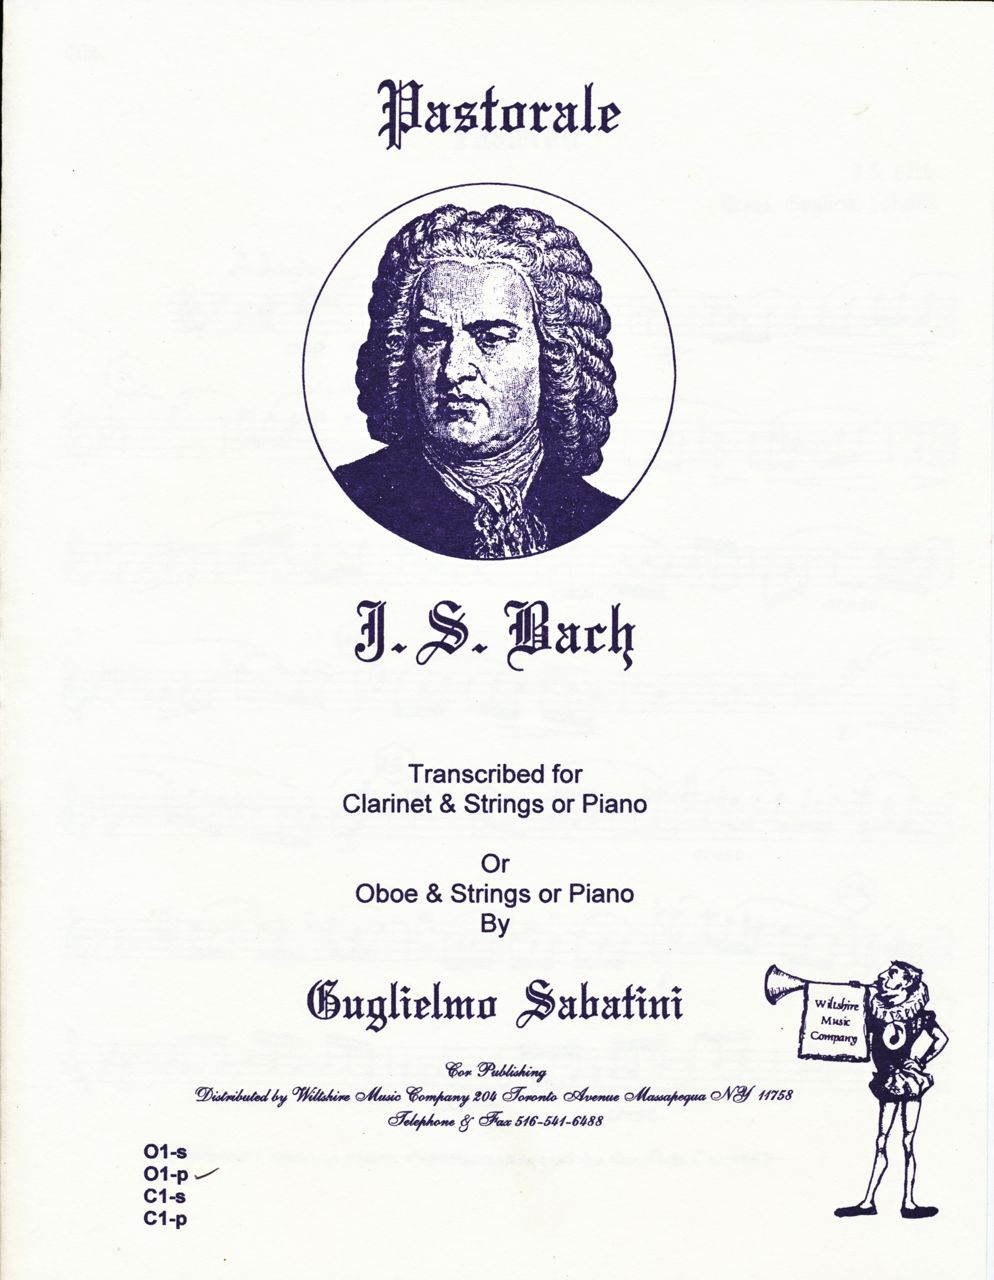 Pastorale, J.S Bach (Sabatini)  for Oboe & Strings